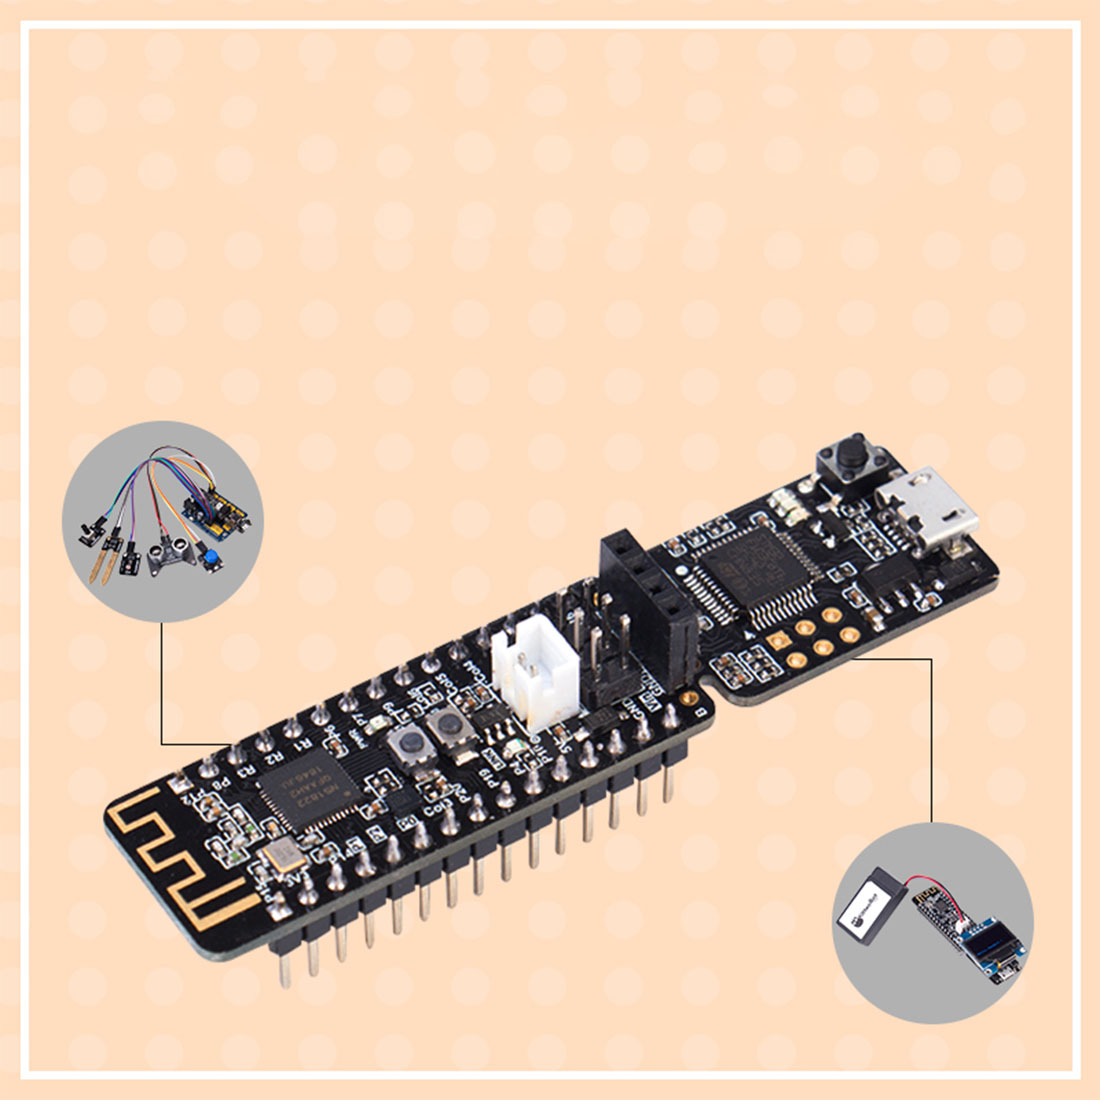 Nanobit Development Board Makecode Graphical Programming Development Board DIY Smart STEM Toy Accessories